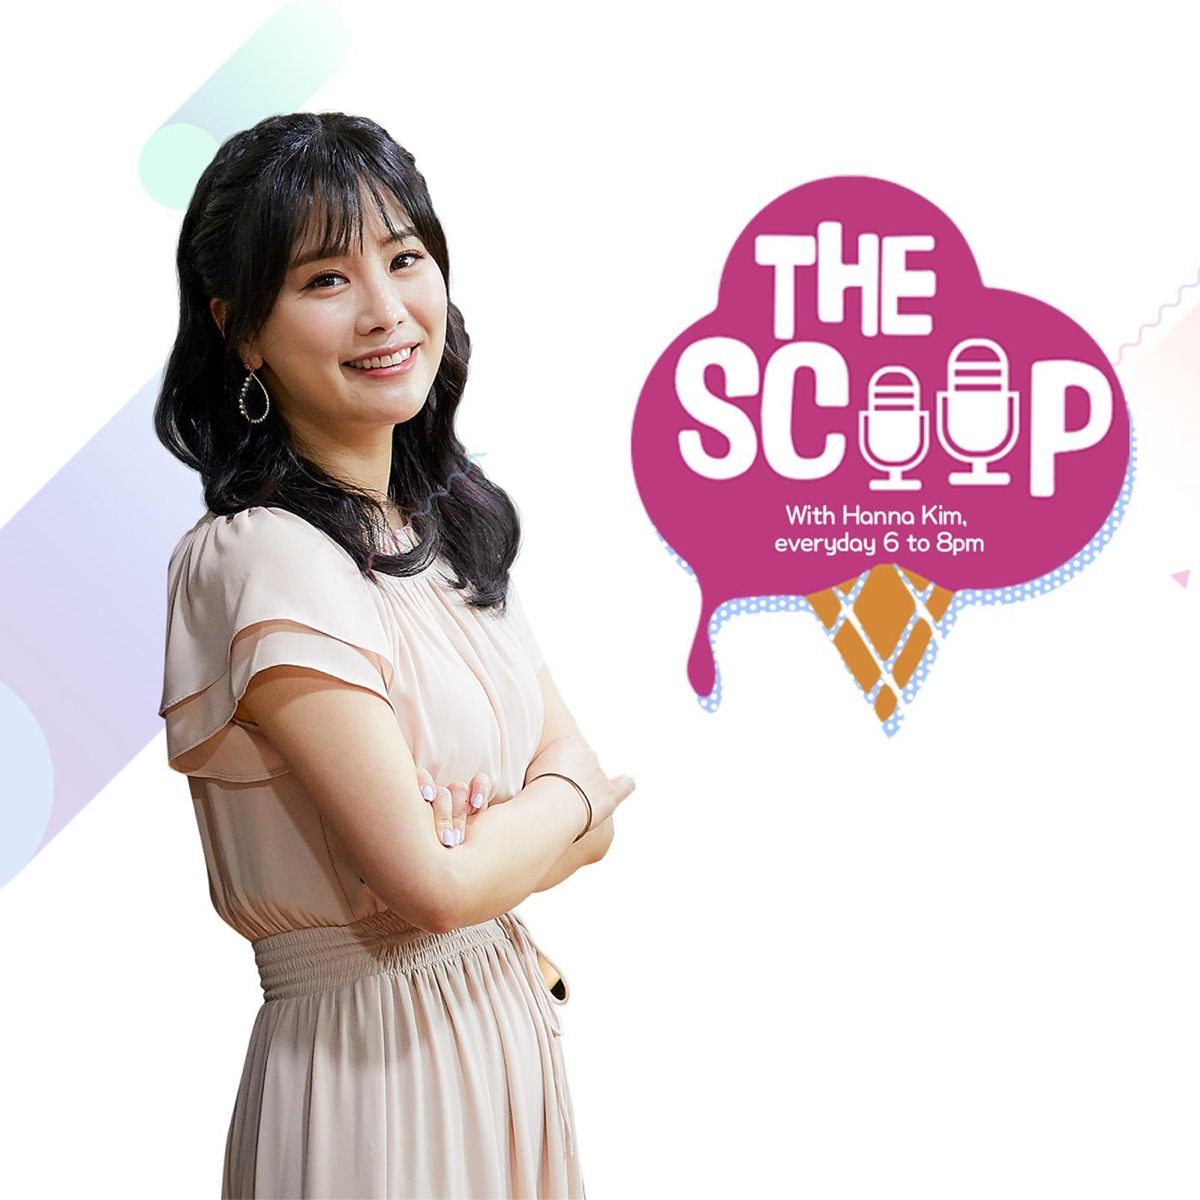 tbs eFM The Scoop